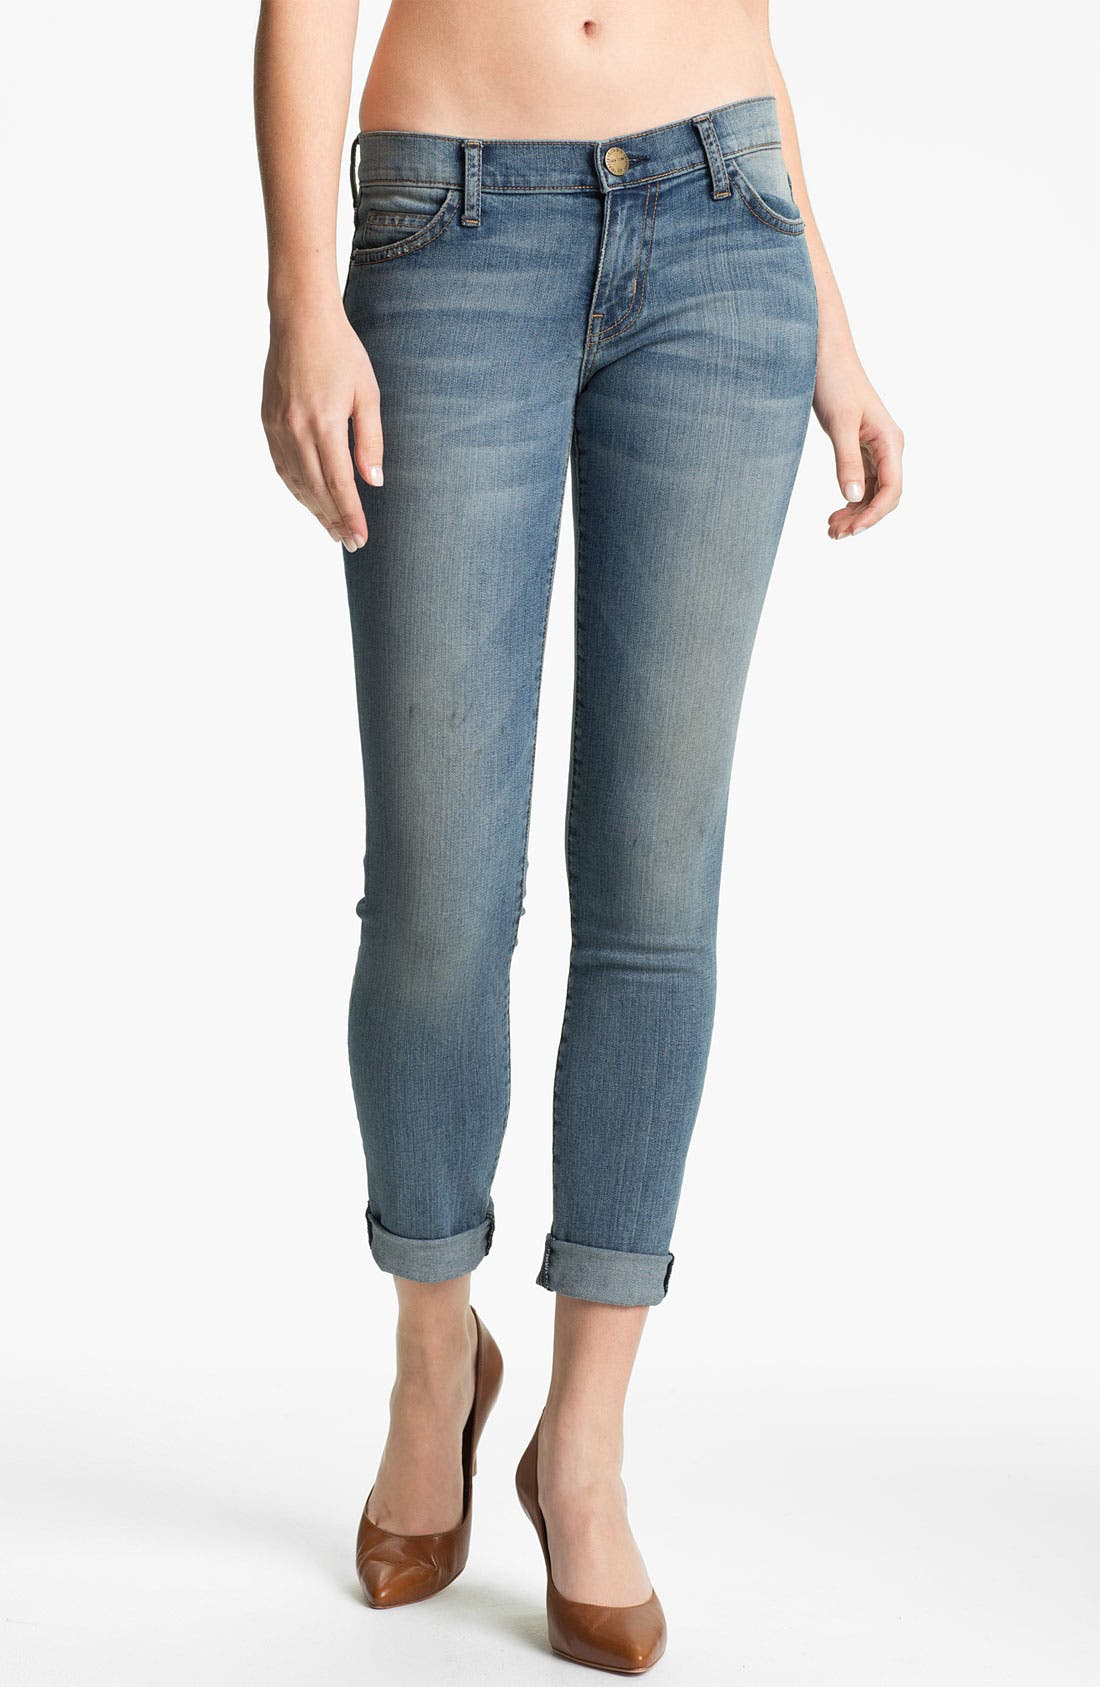 Alternate Image 1 Selected - Current/Elliott 'The Rolled' Skinny Jeans (Bleecker)